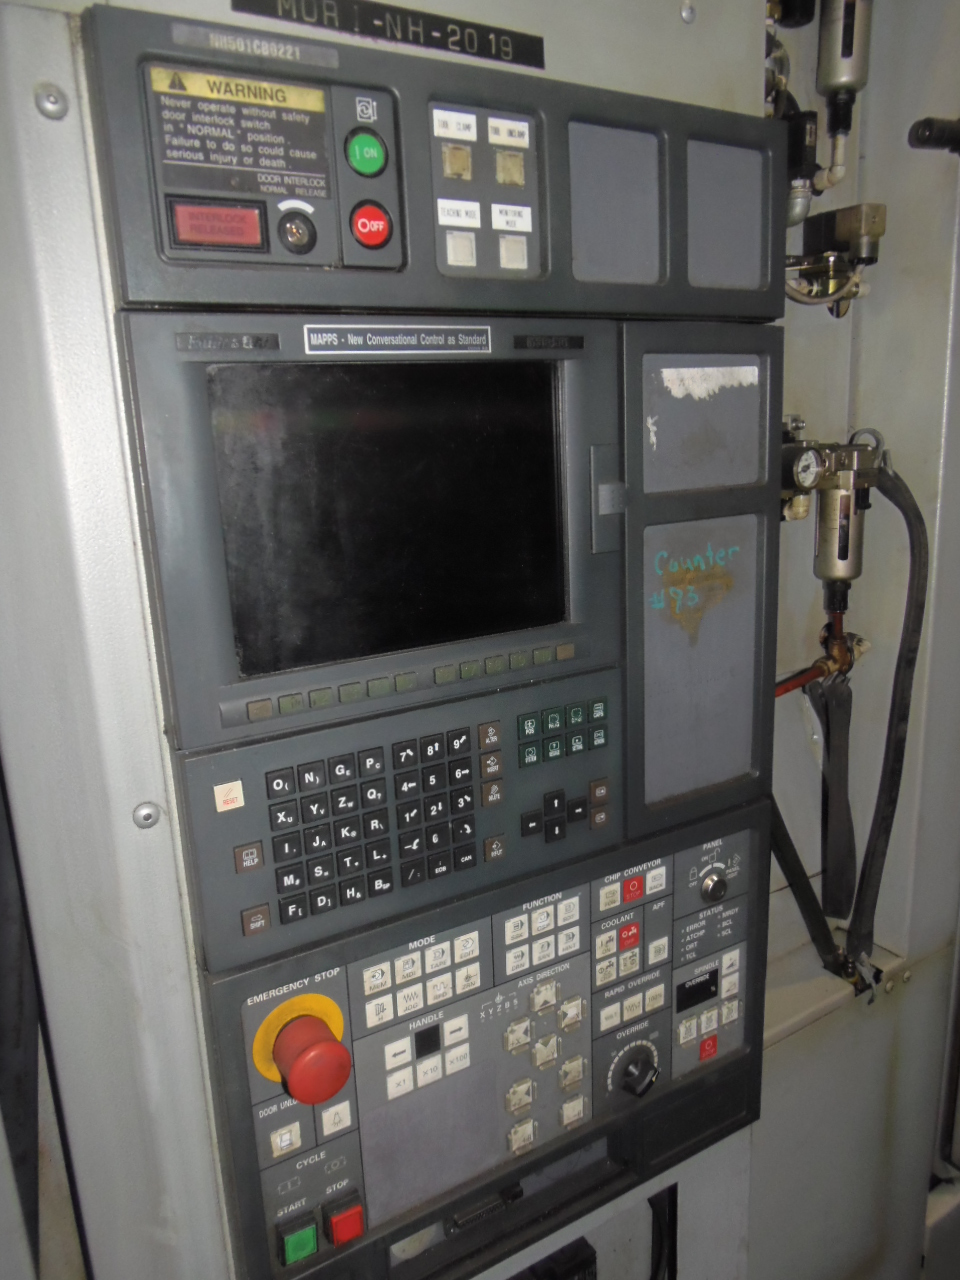 NH5000/40 MORI SEIKI, 2003, WITH COOLANT SYSTEM, 1 DEGREE, MSC501, 60 ATC, 40 TAPER, 2 PALLET, 14,000 RPM